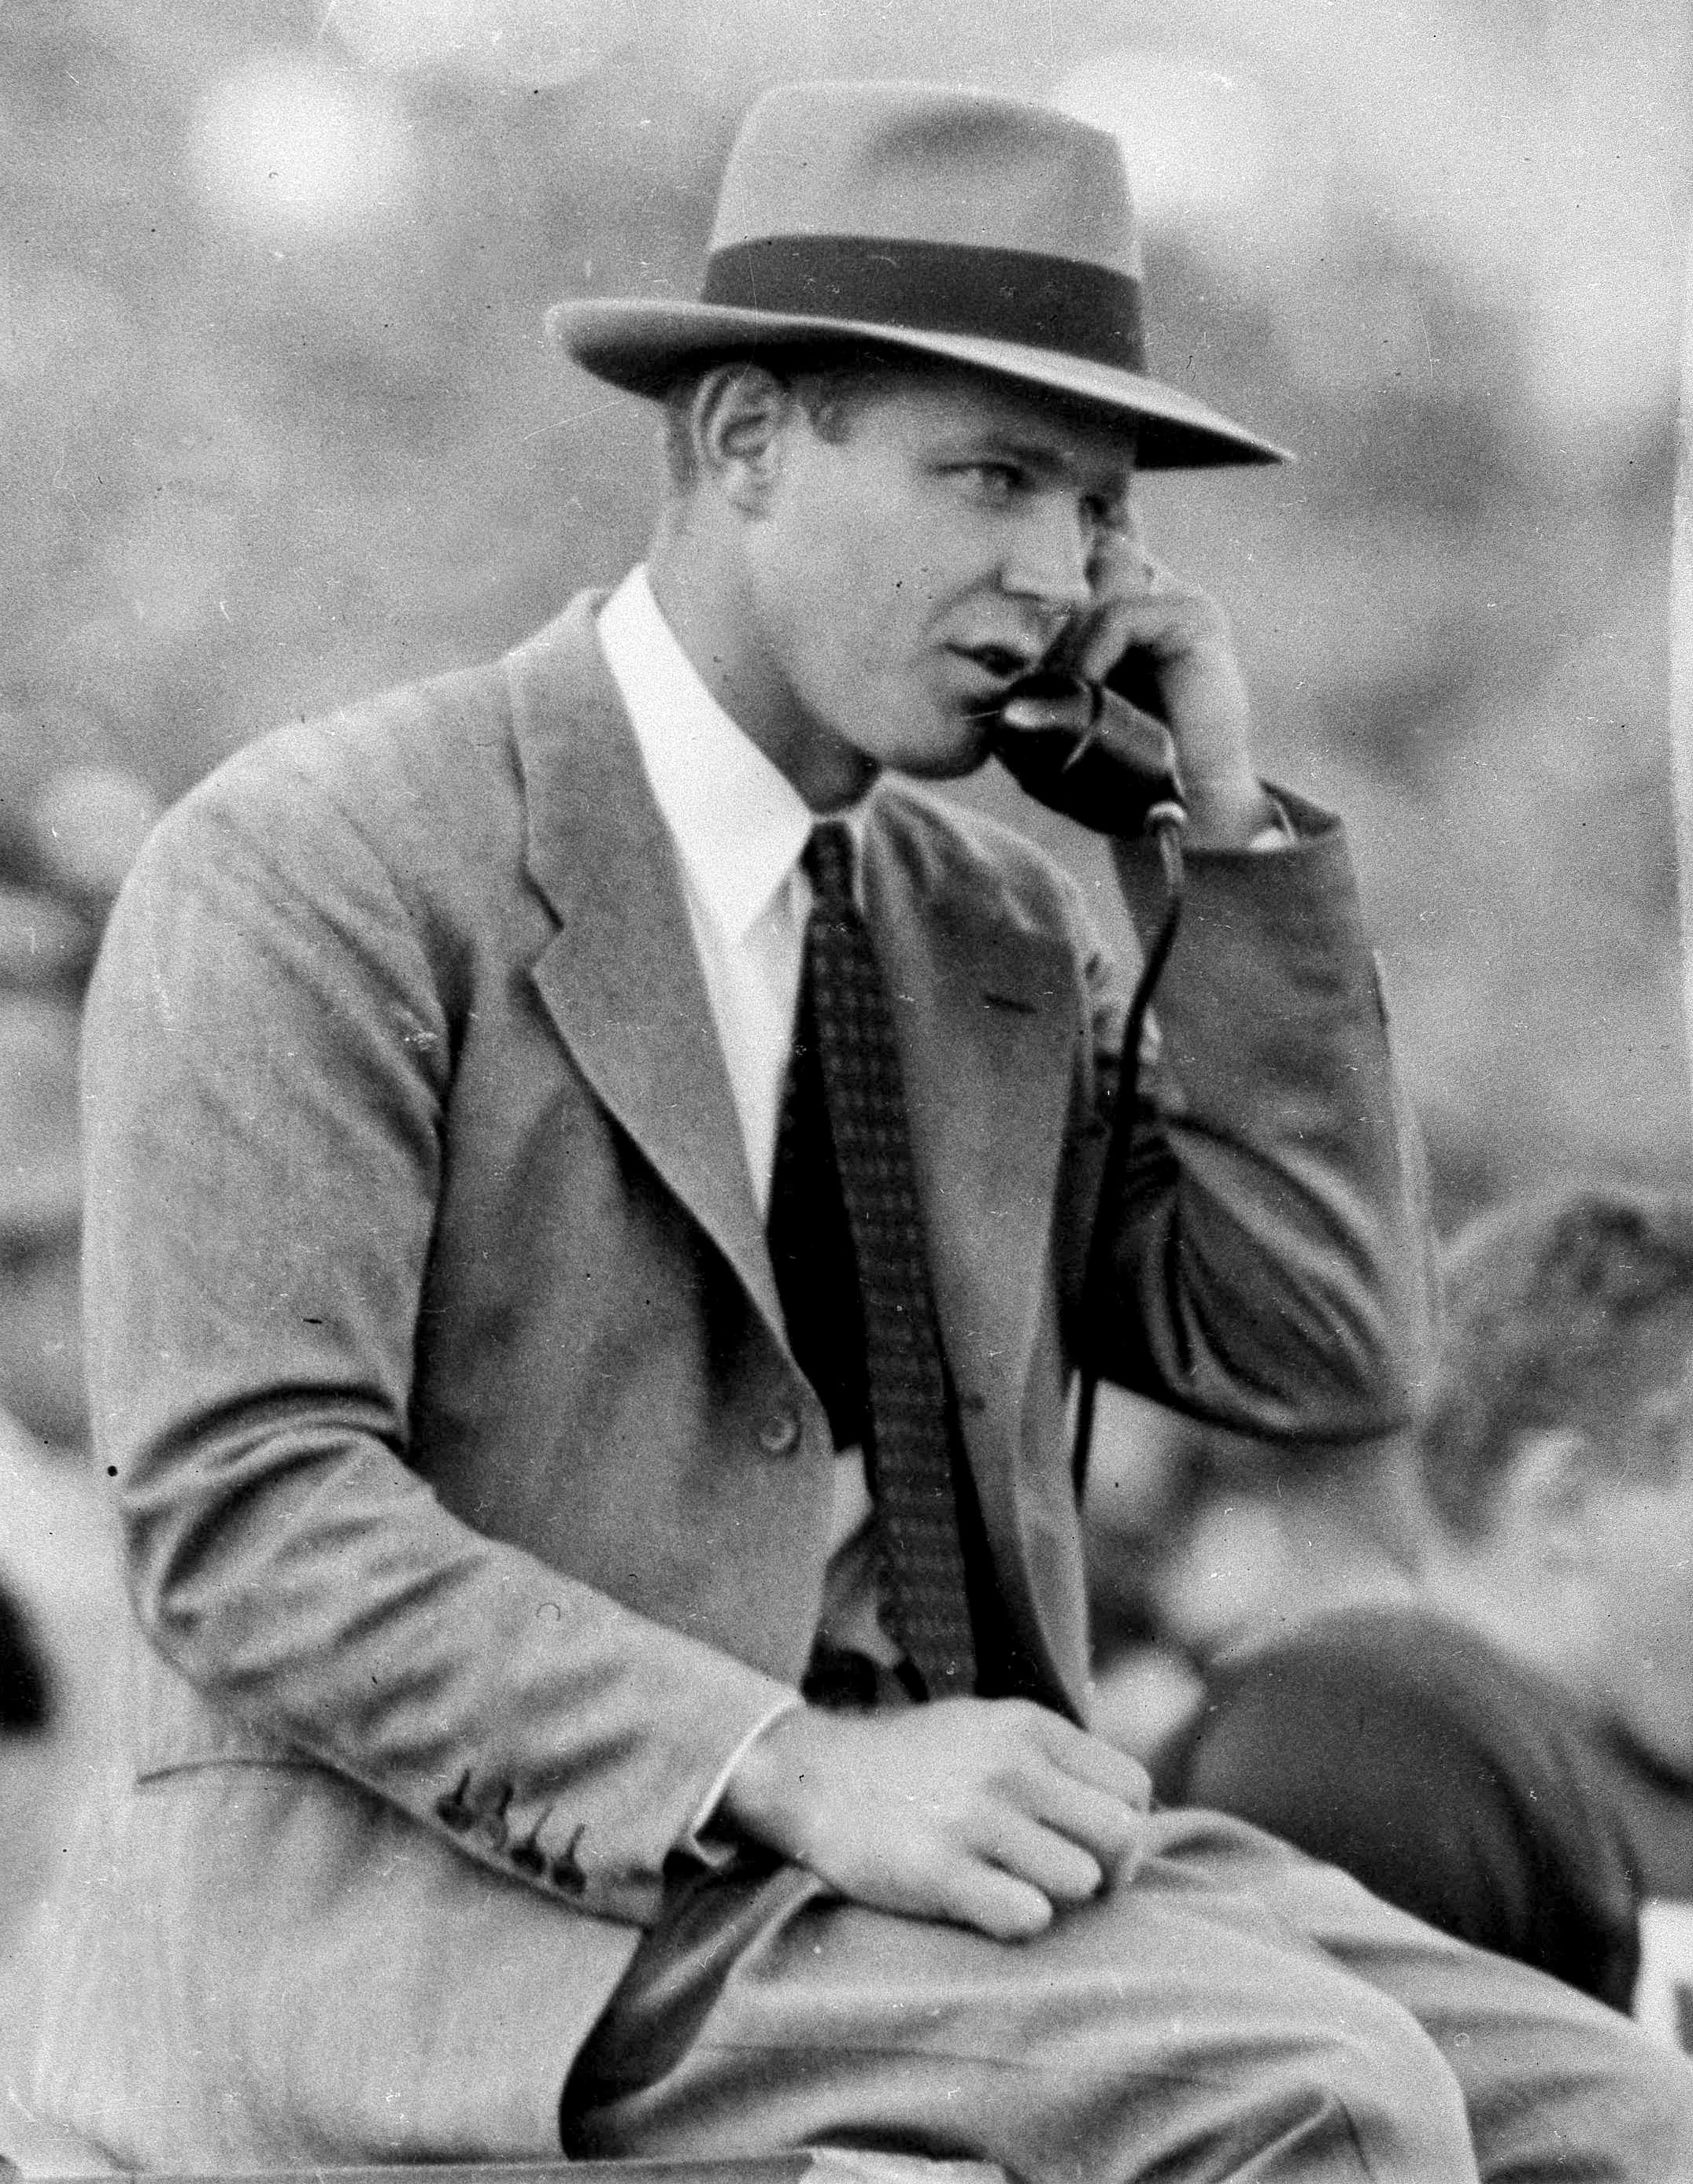 FILE - In this Nov. 1949 file photo, Oklahoma coach Bud Wilkinson talks on the sideline on a phone during a college football game in Norman, Okla. By the 1950s, college football's balance of power had drifted away from the elite eastern schools and into t